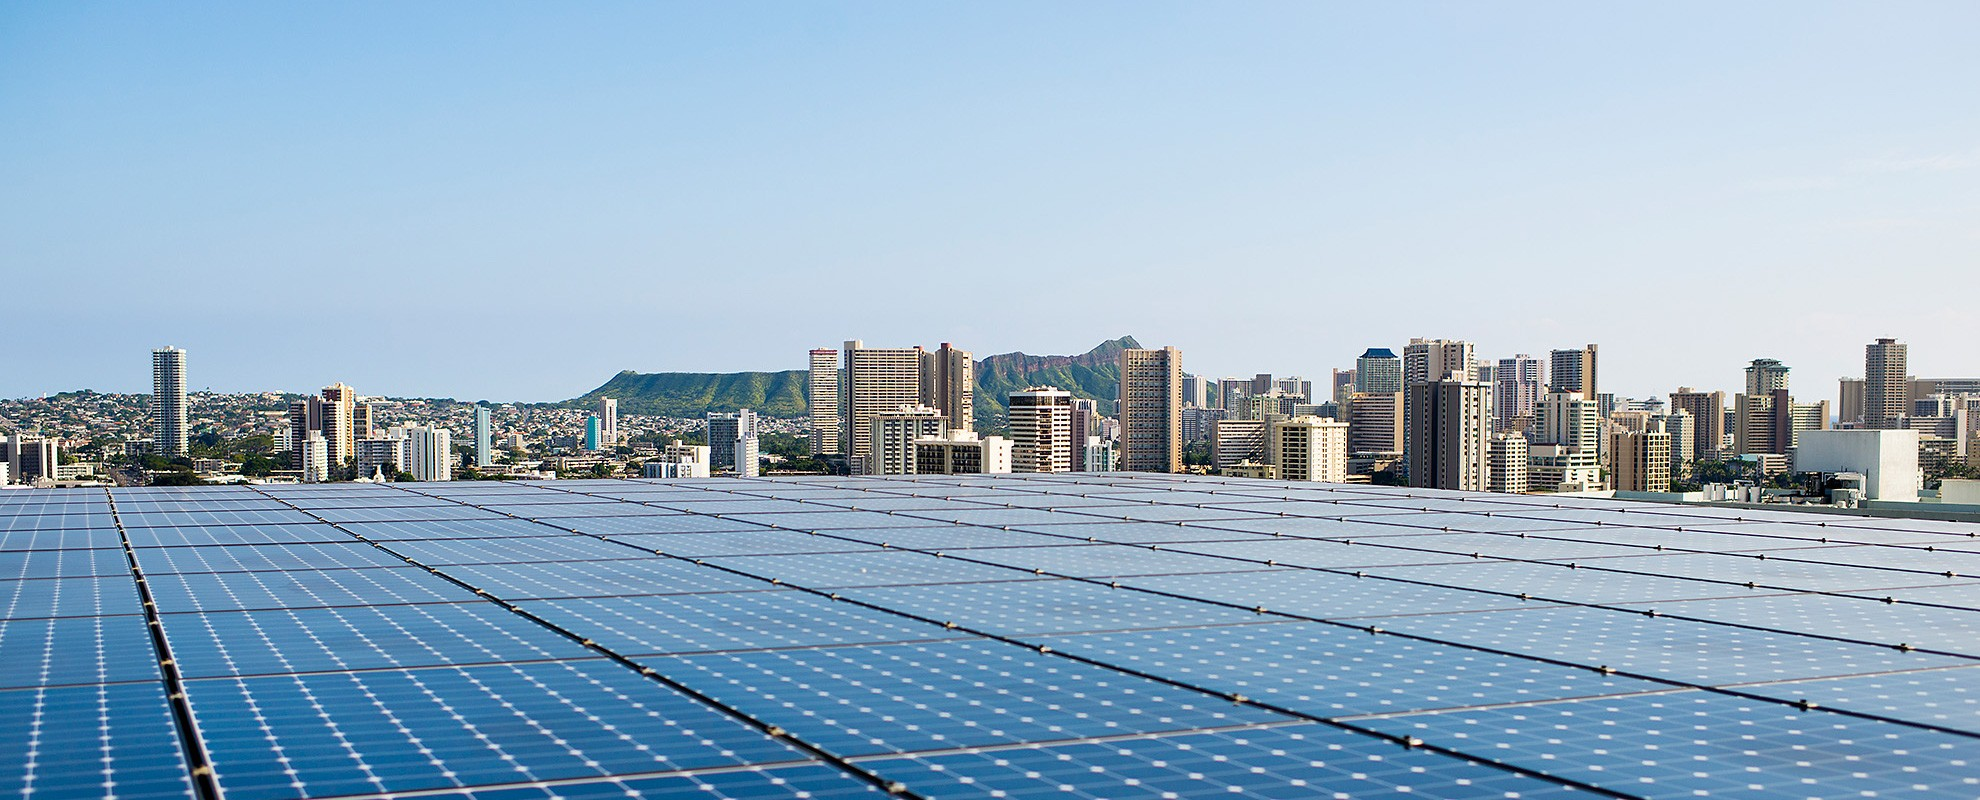 Solar panels on the roof of the new parking garage at Kapiolani Medical Center in Oahu, Hawaii.